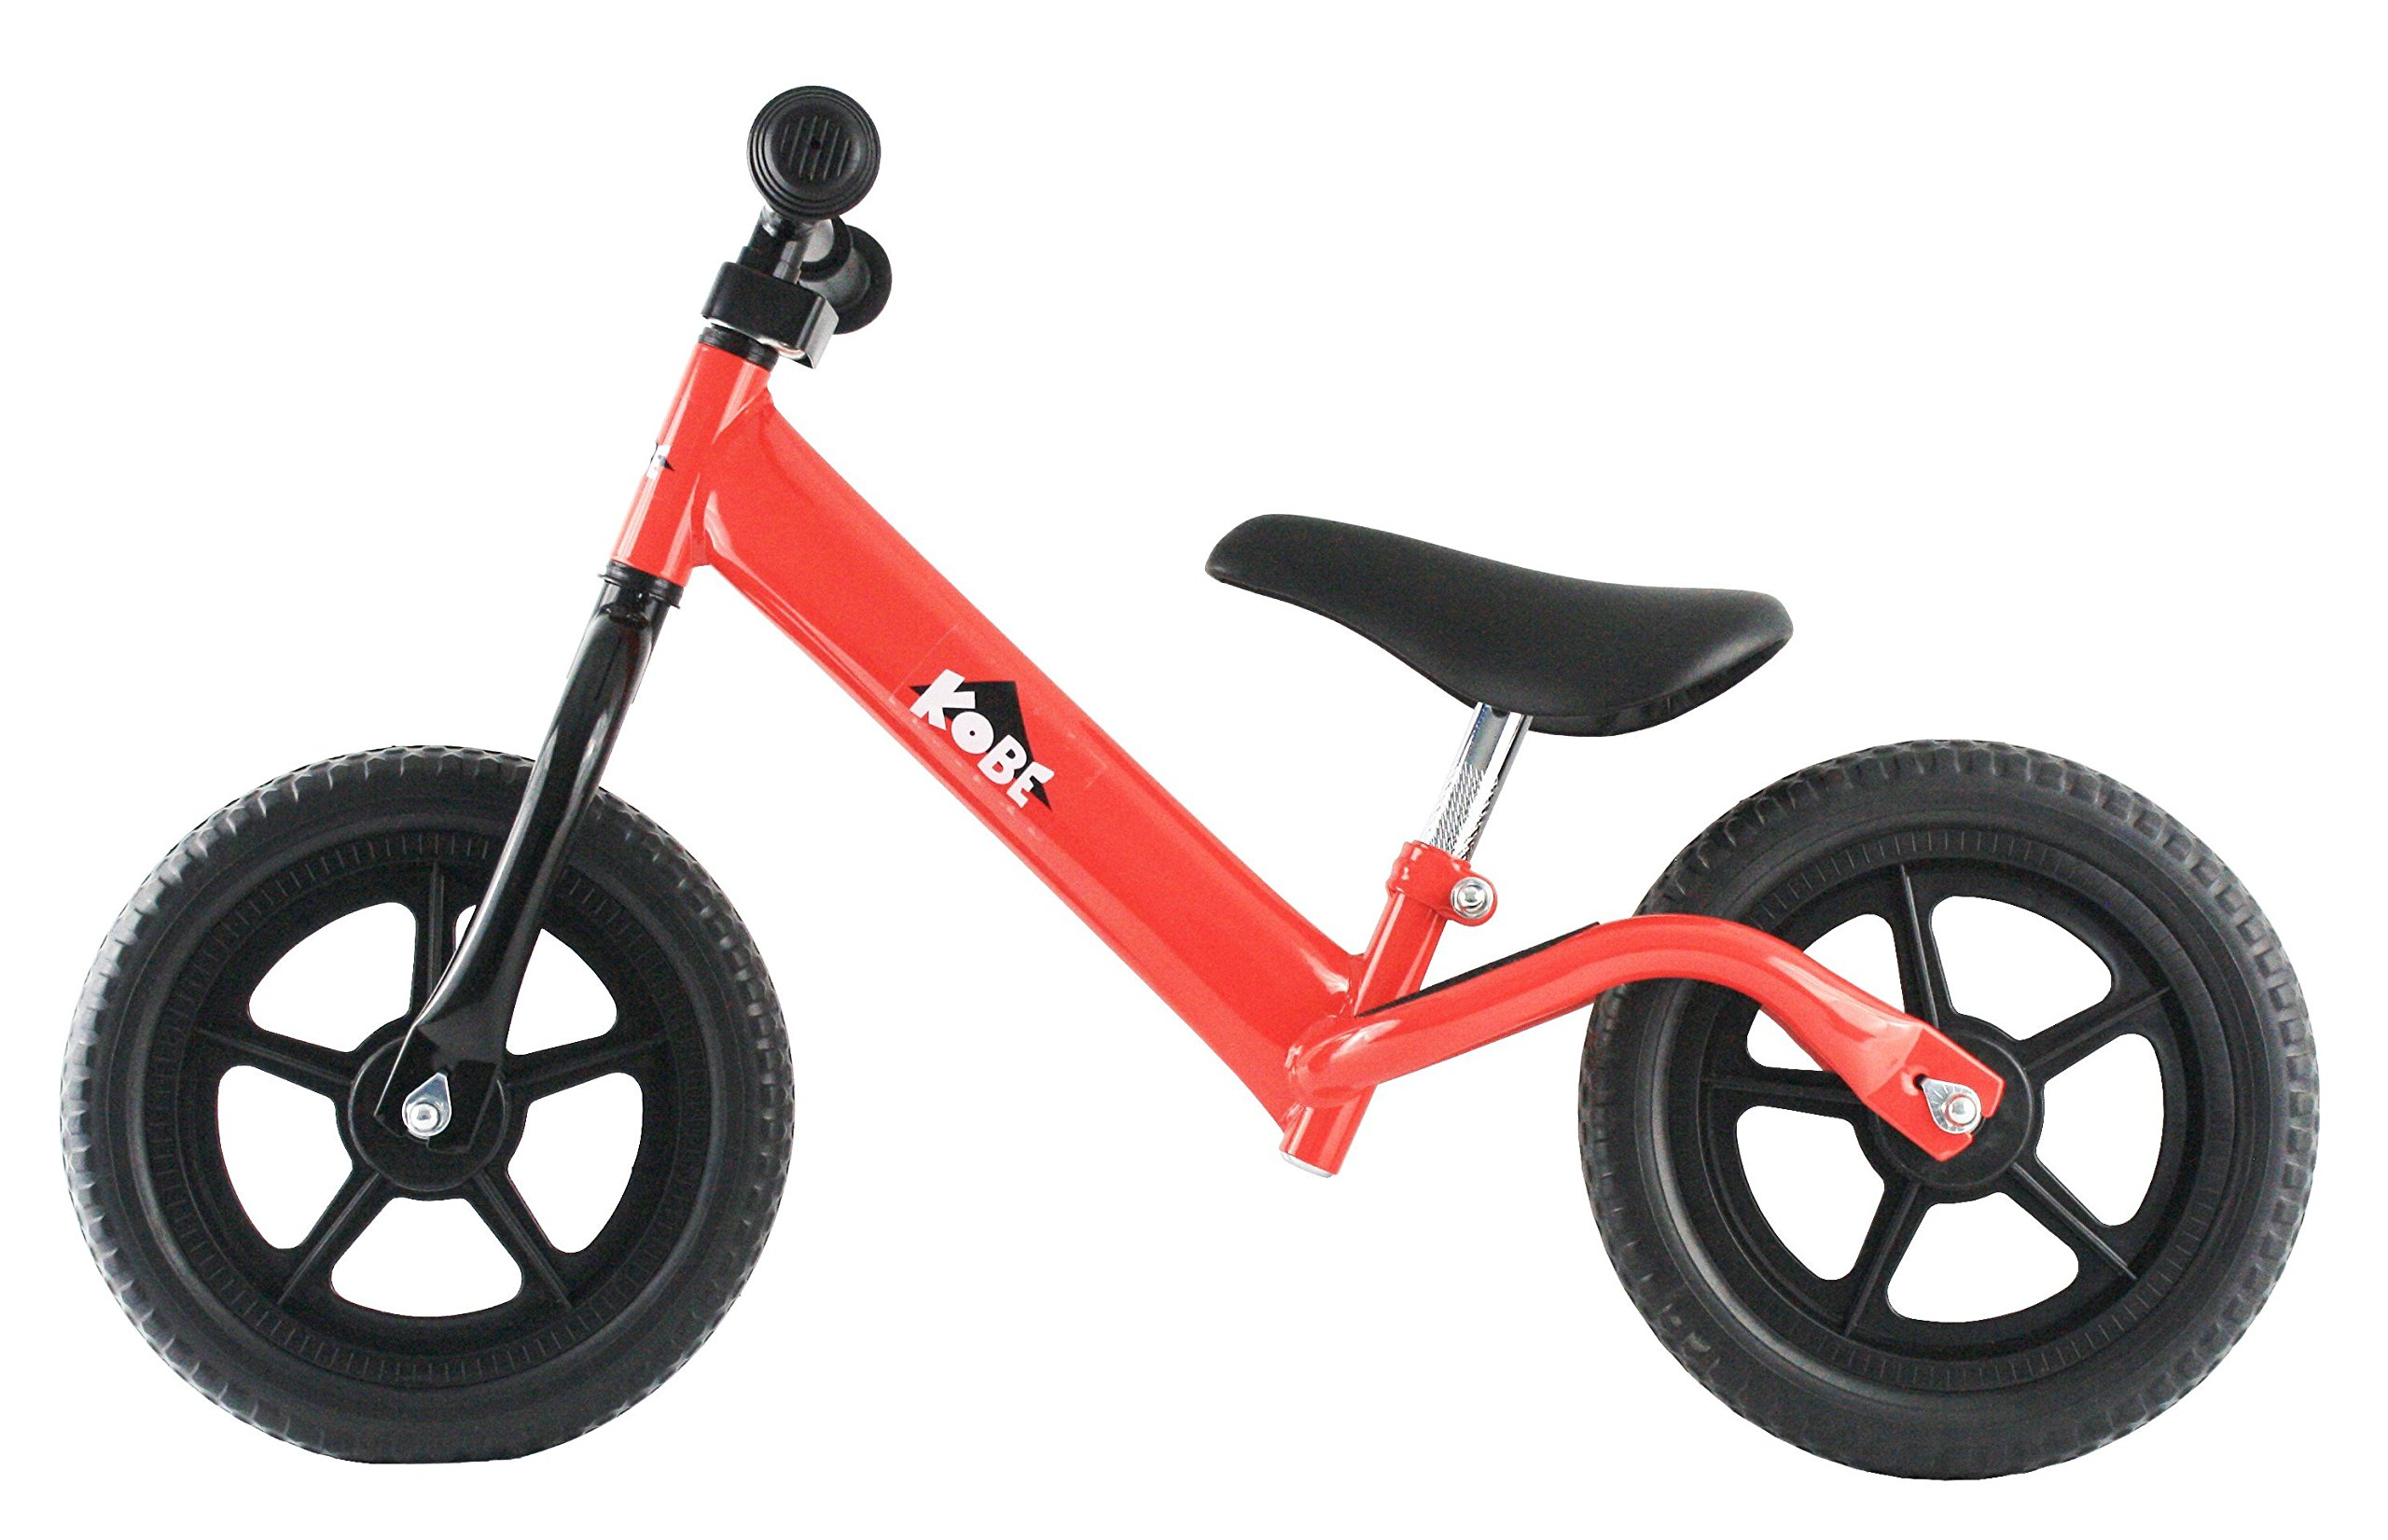 Kobe Metal Balance Bike - RED - Run Bicycle - Toddler - No pedal